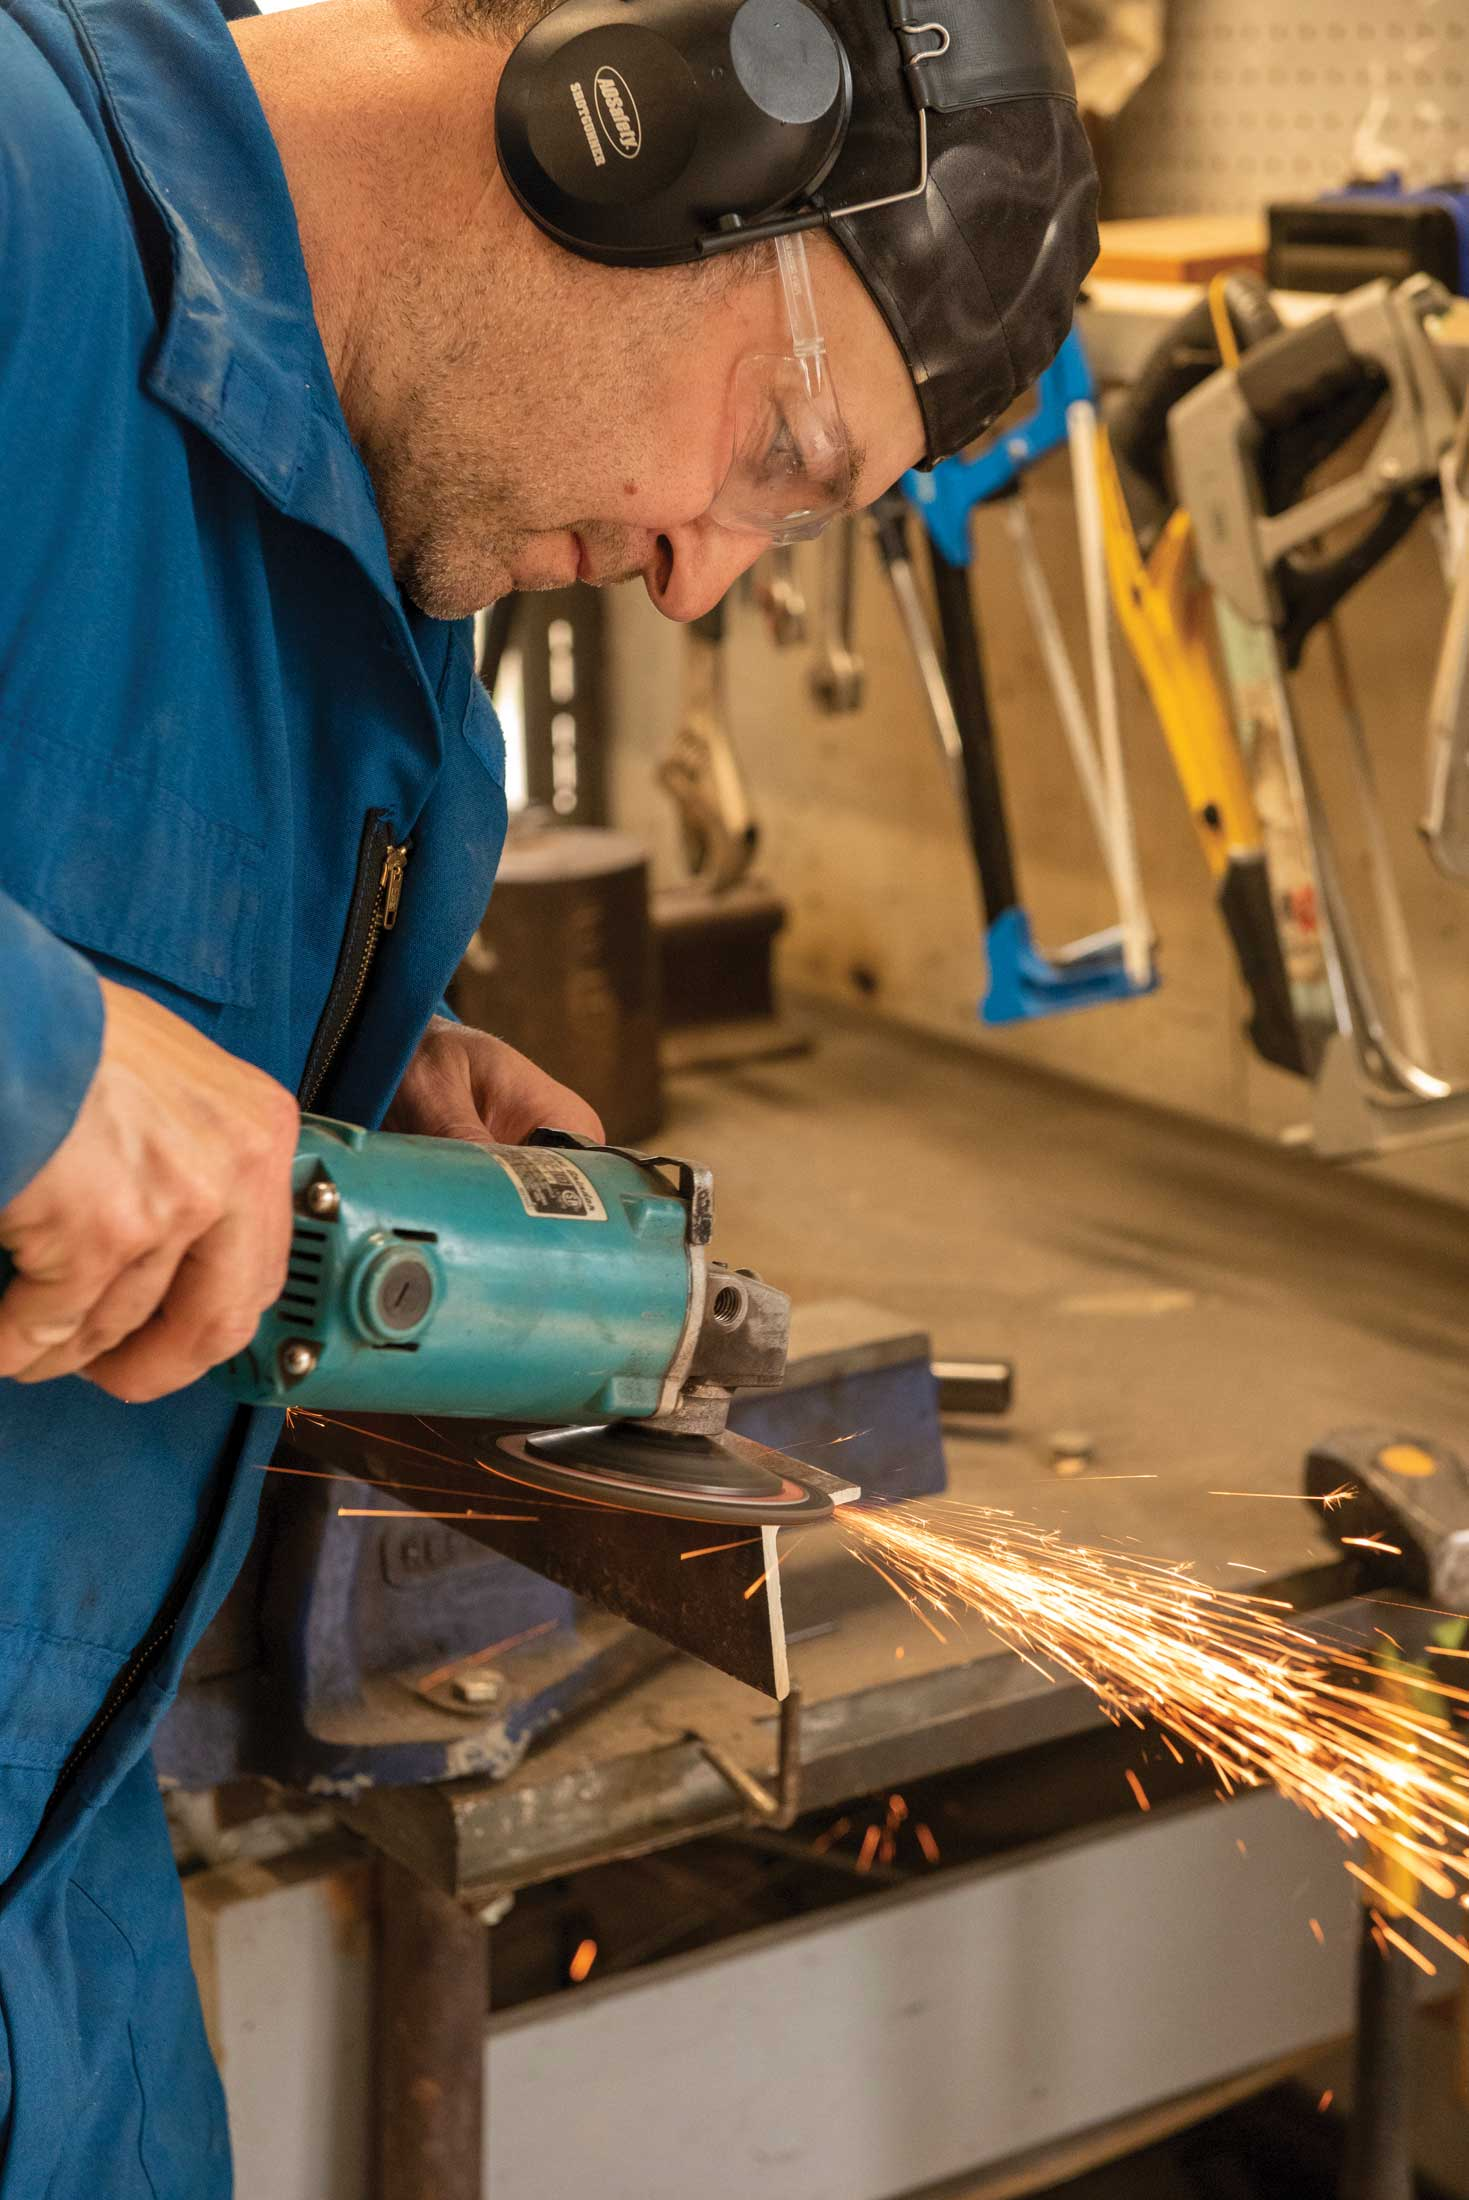 Step 4, metal preparation: Good metal preparation is crucial to good welds, especially when using recycled metal. Here, a wire brush on an angle grinder removes old paint and rust.